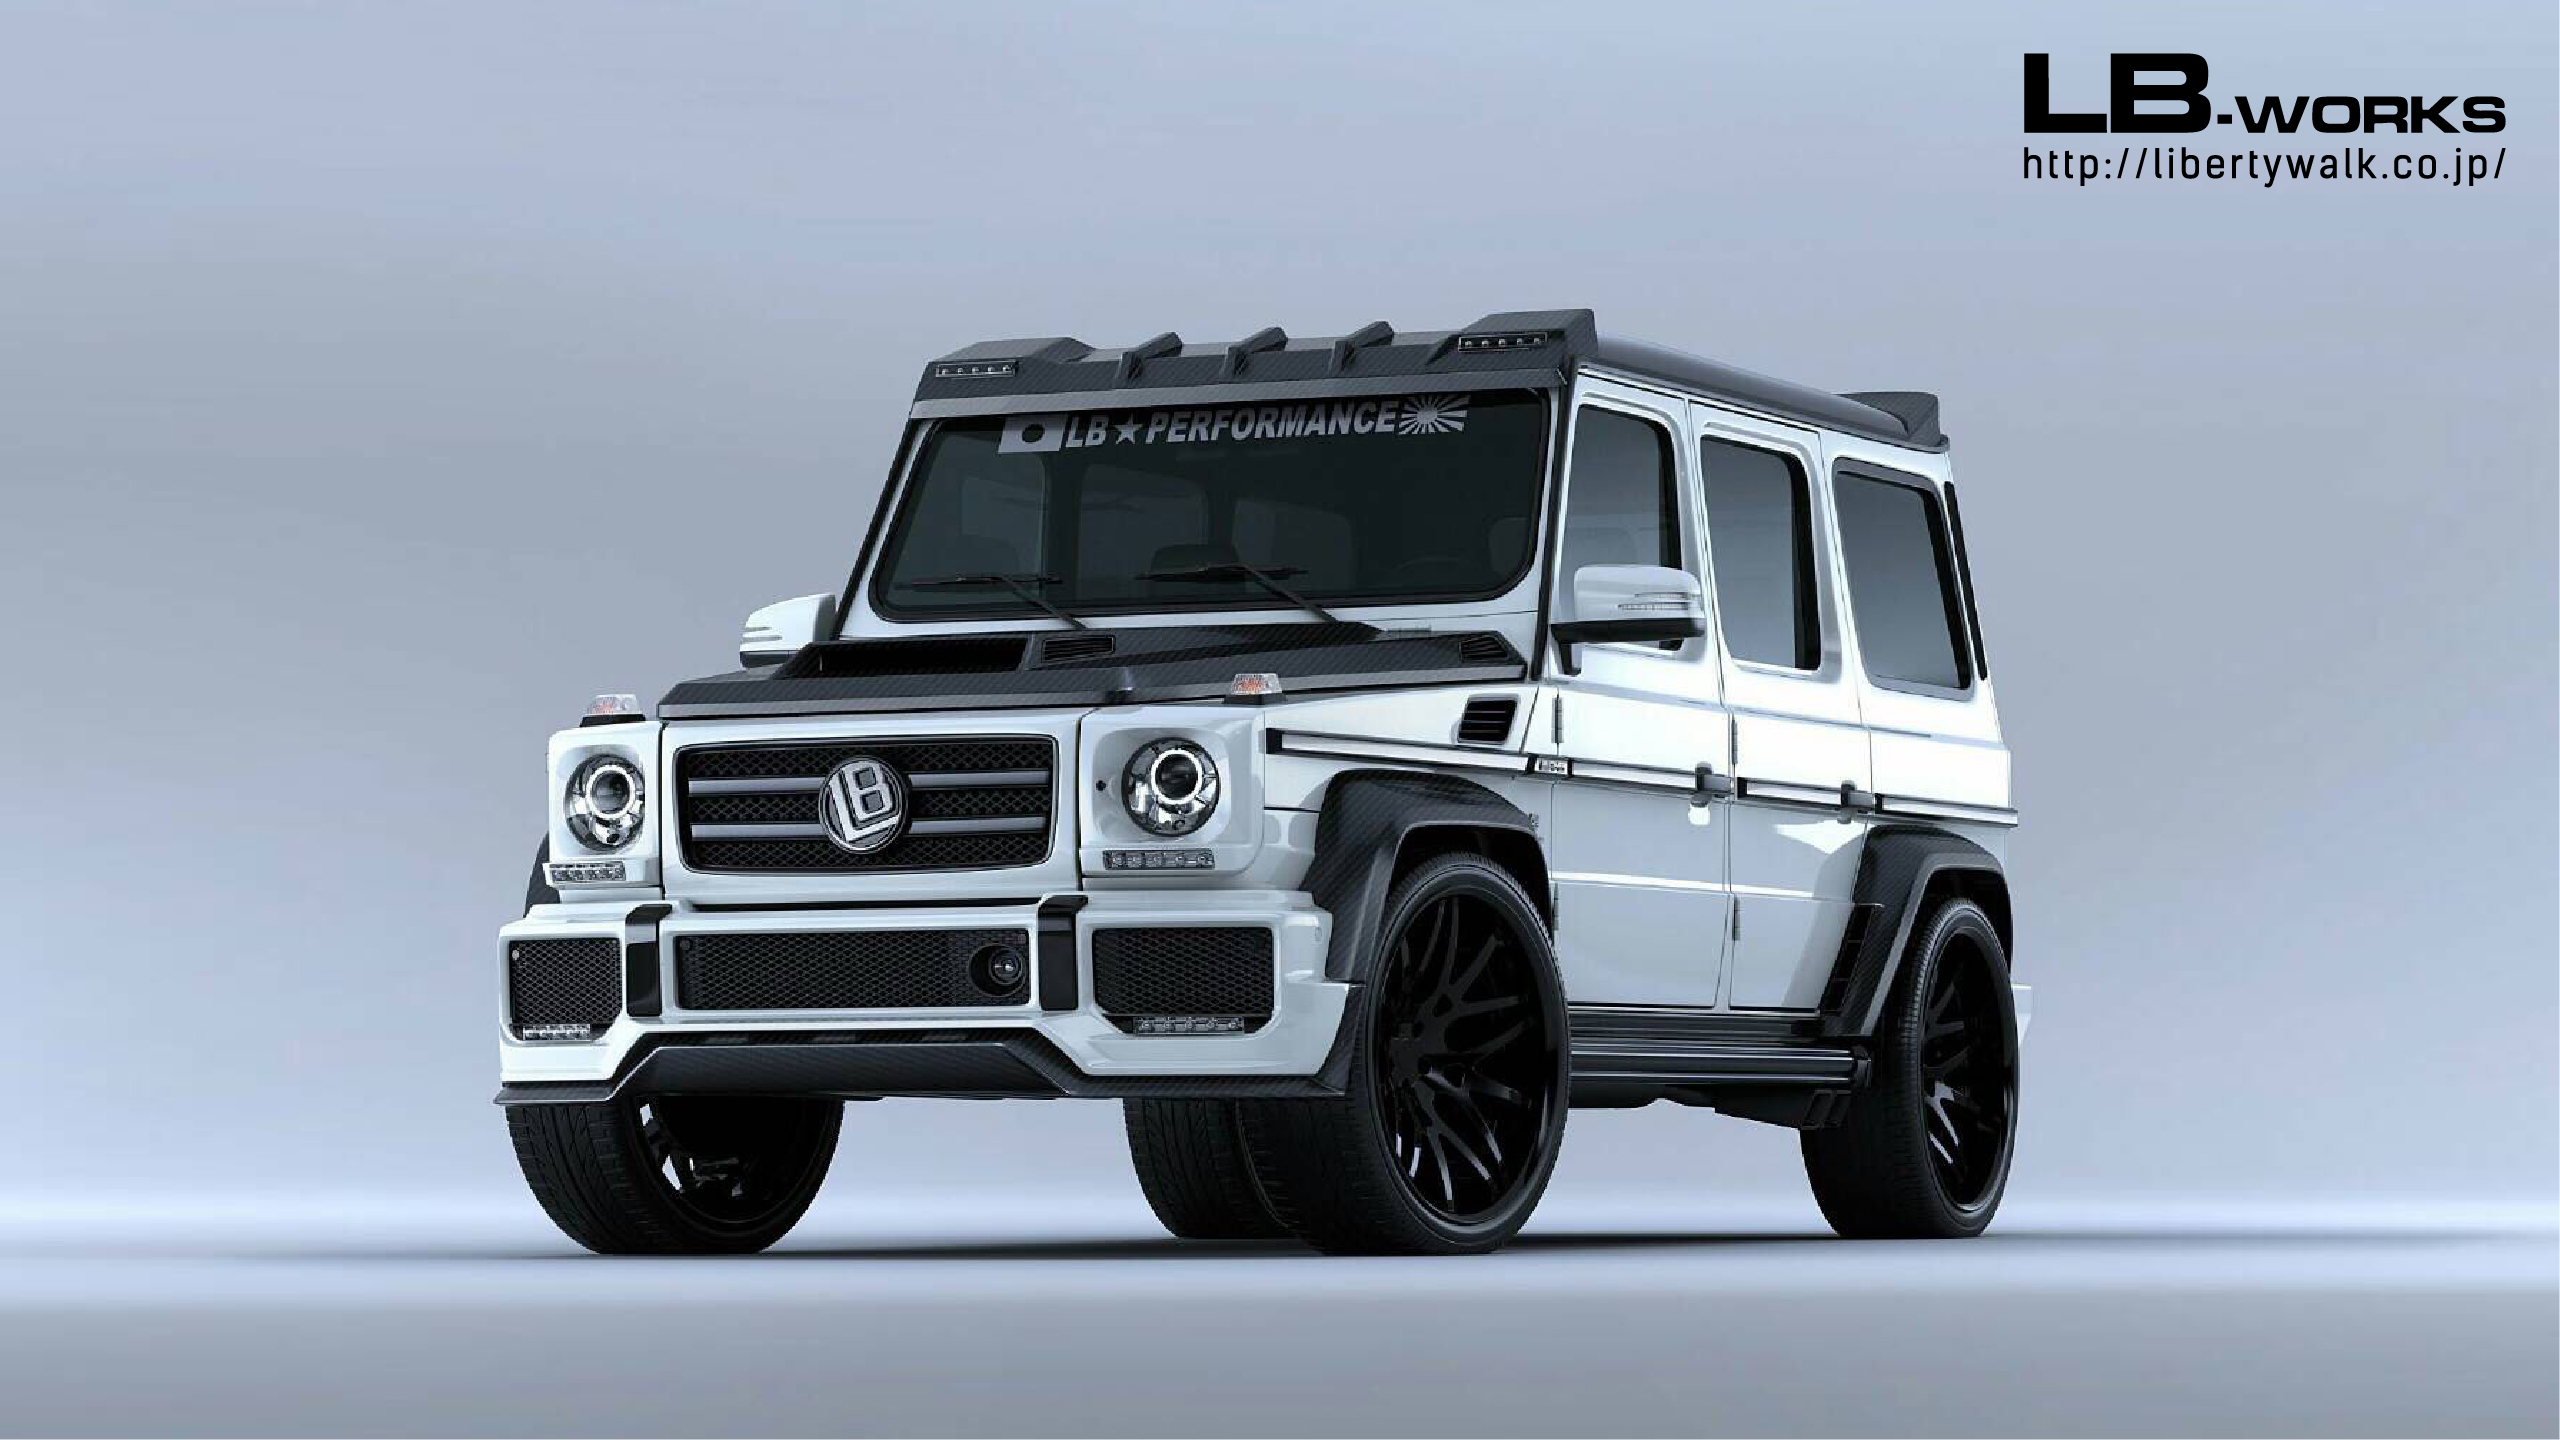 liberty walk has a body kit for the mercedes g class and. Black Bedroom Furniture Sets. Home Design Ideas